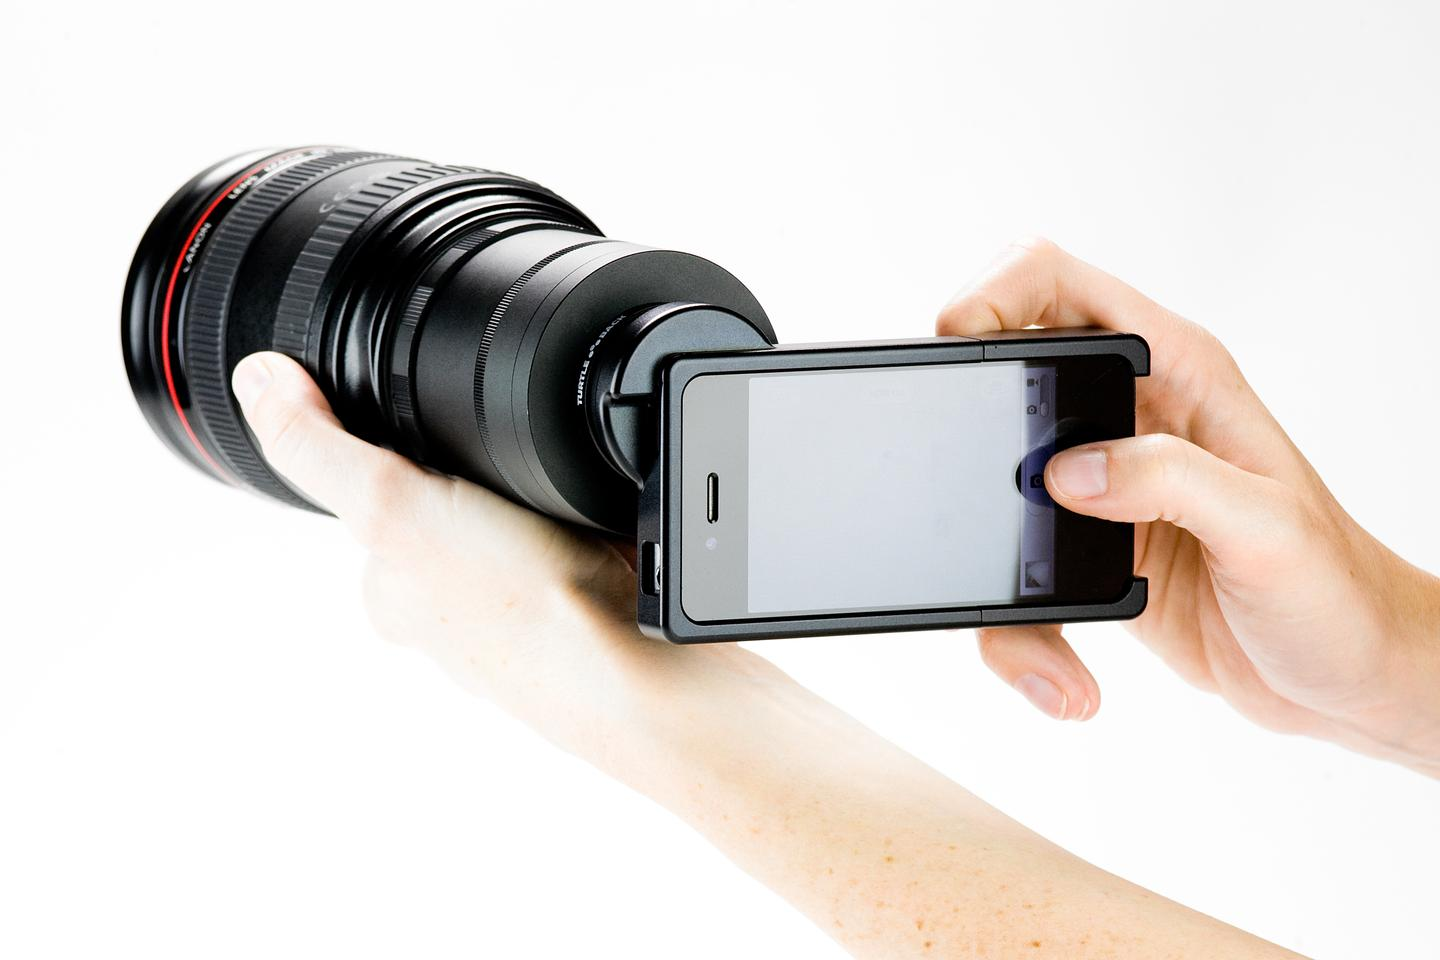 The iPhone SLR Mount comes in either a Nikon F-mount or Canon EF-mount version, and allows iPhoneographers to utilize an SLR lens with the iPhone's camera (Photo: Photojojo)